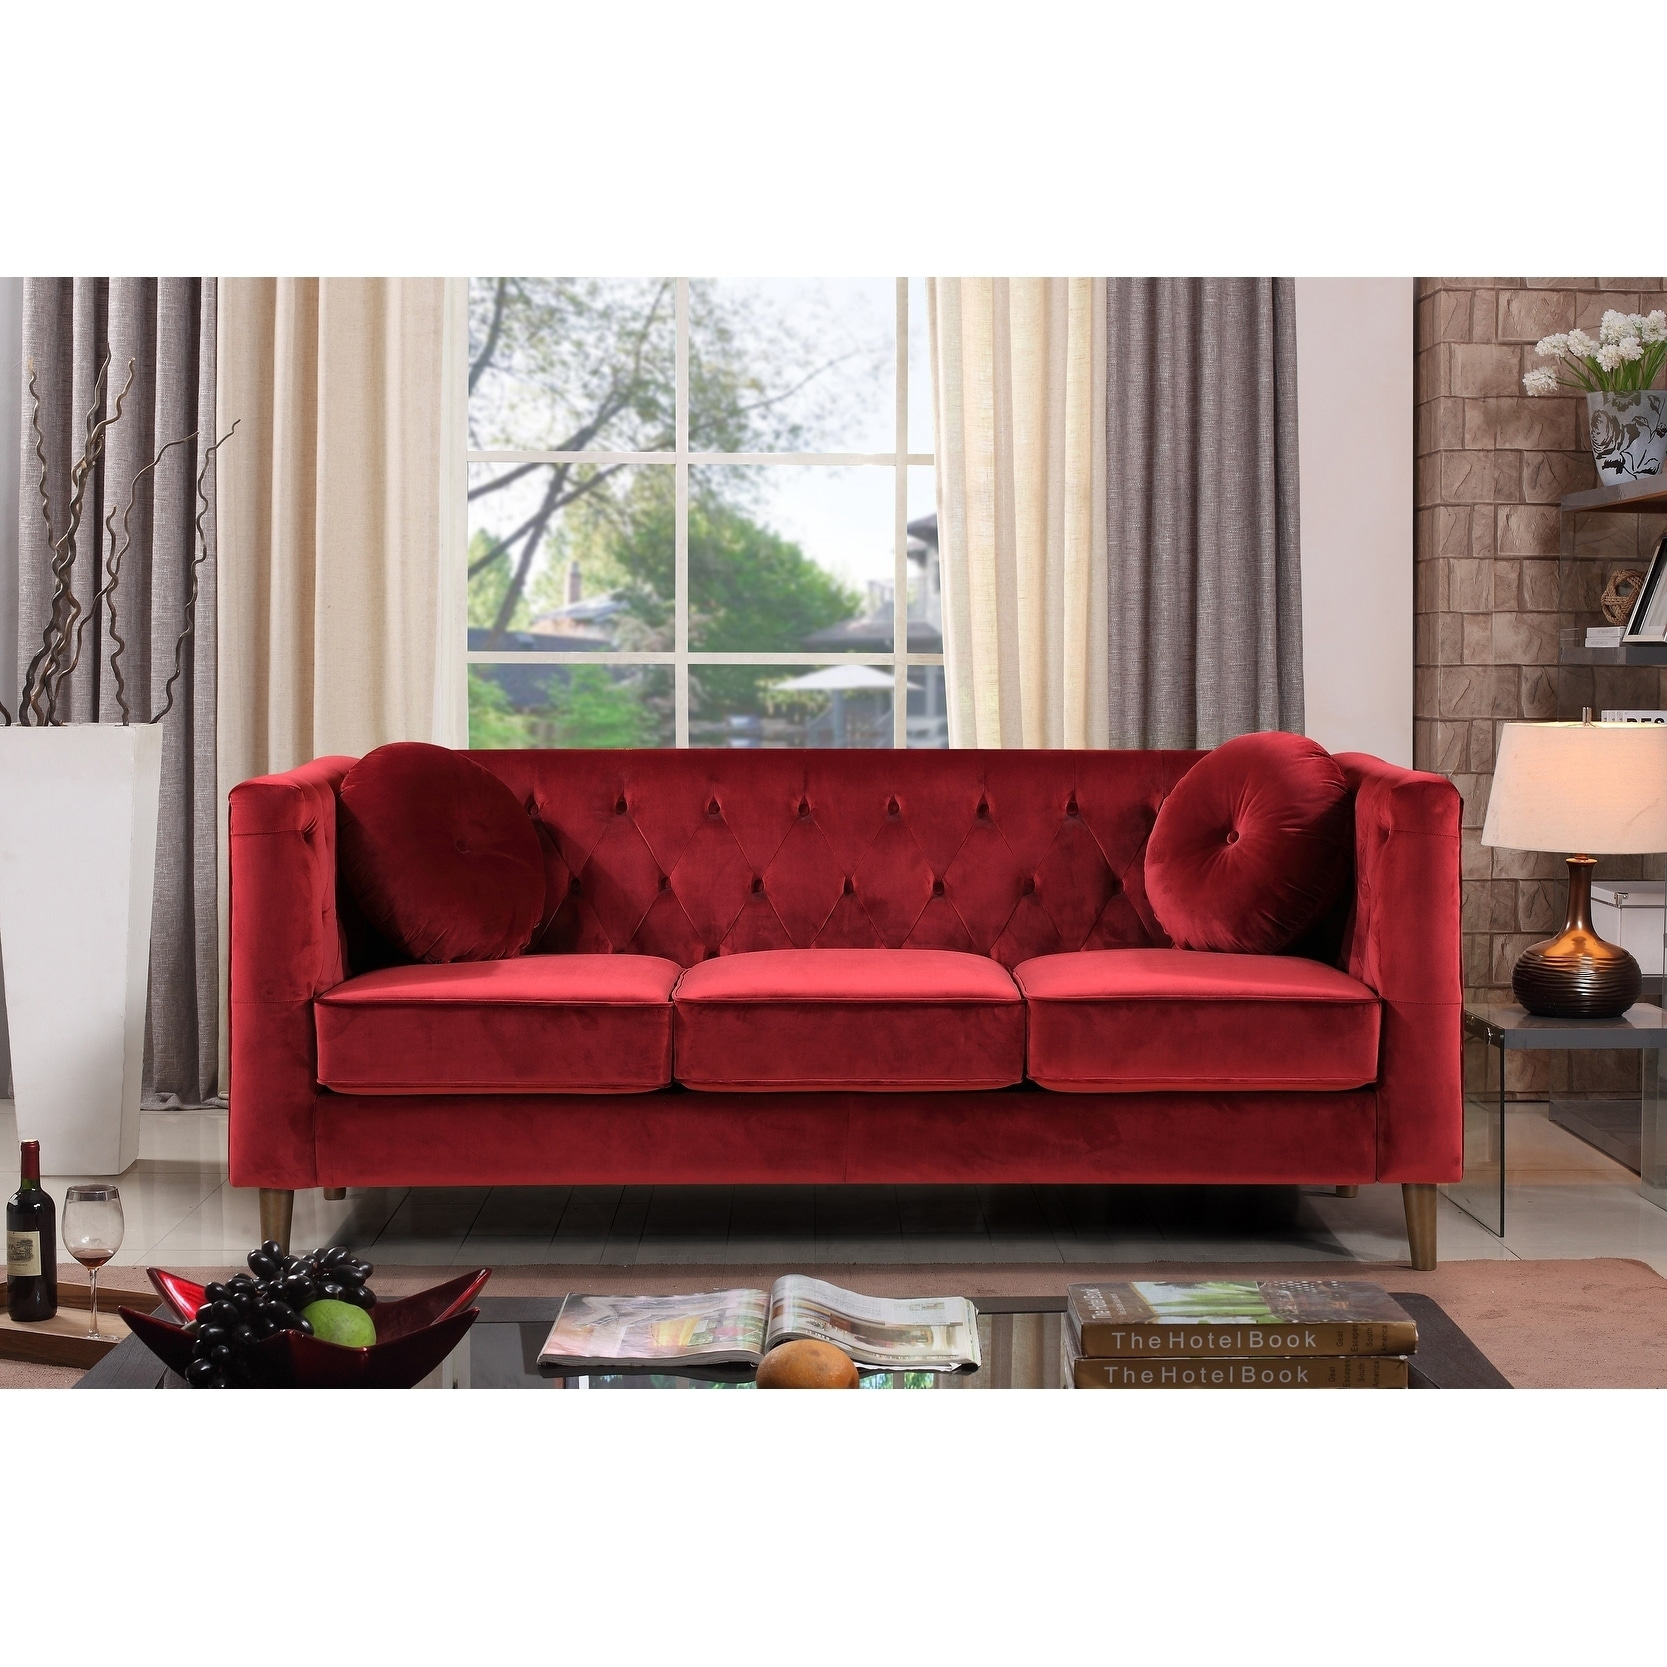 category austin furniture linden page store product to id hover zoom usa sofa futons bed index name by empire chain futon